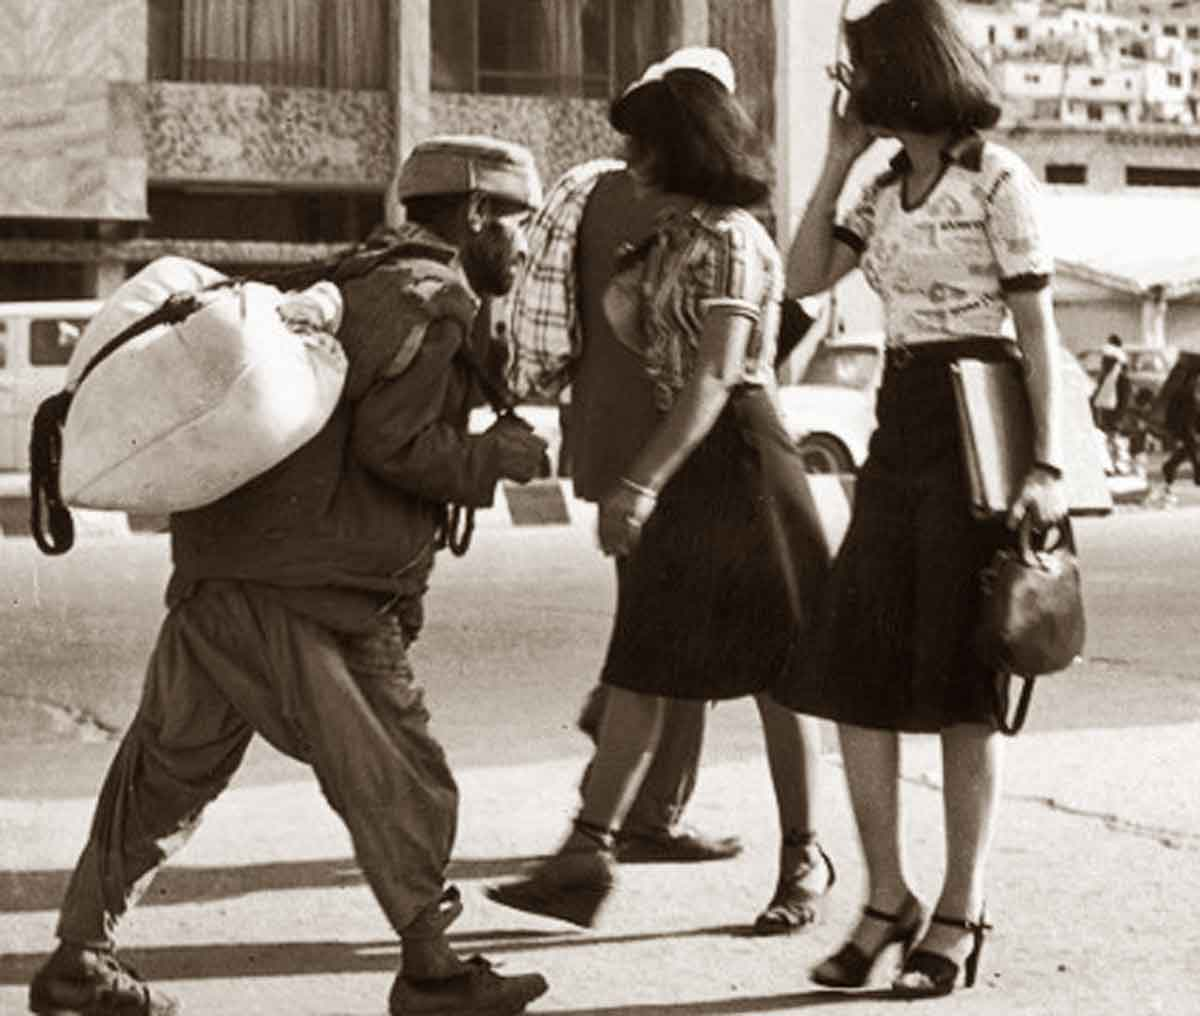 Fashion-Freedom-in-Pre-War-Afghanistan---students-1970s